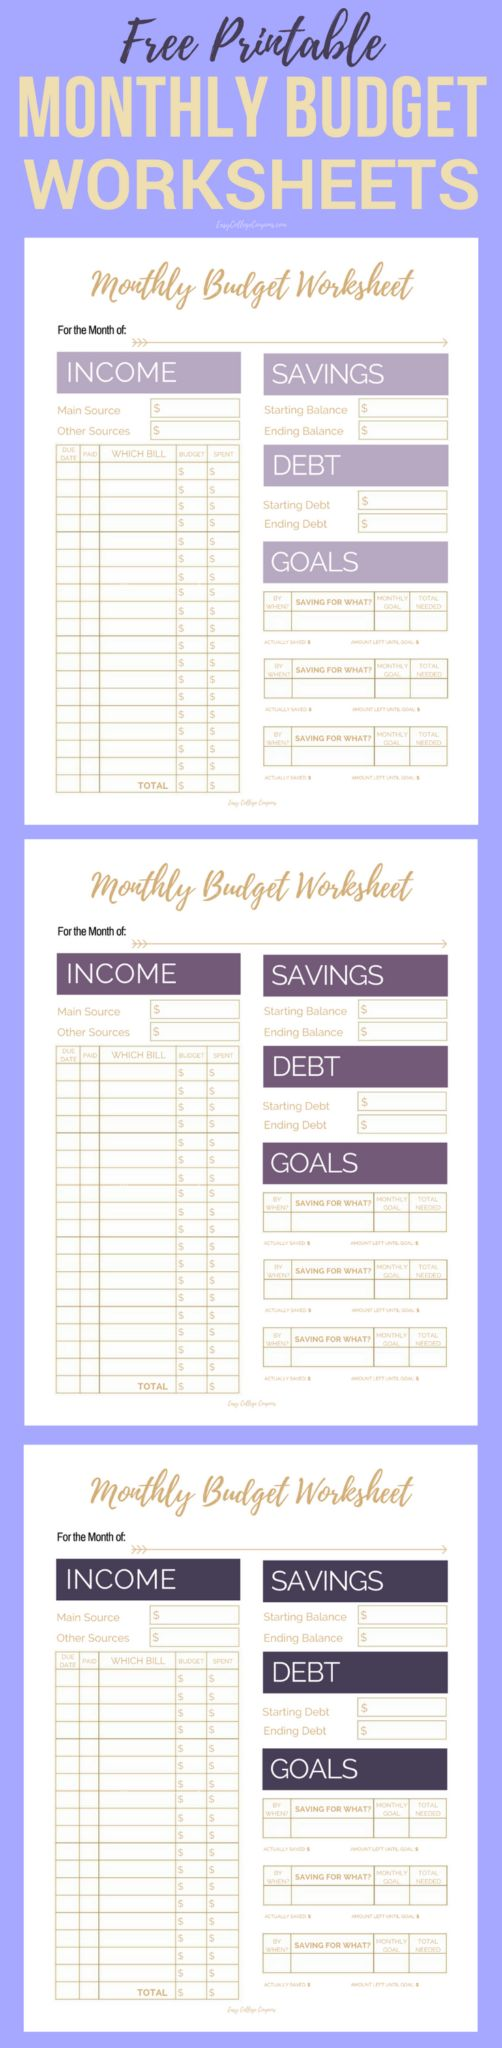 Worksheets Free Printable Budget Worksheet best 25 printable budget sheets ideas on pinterest monthly free worksheets